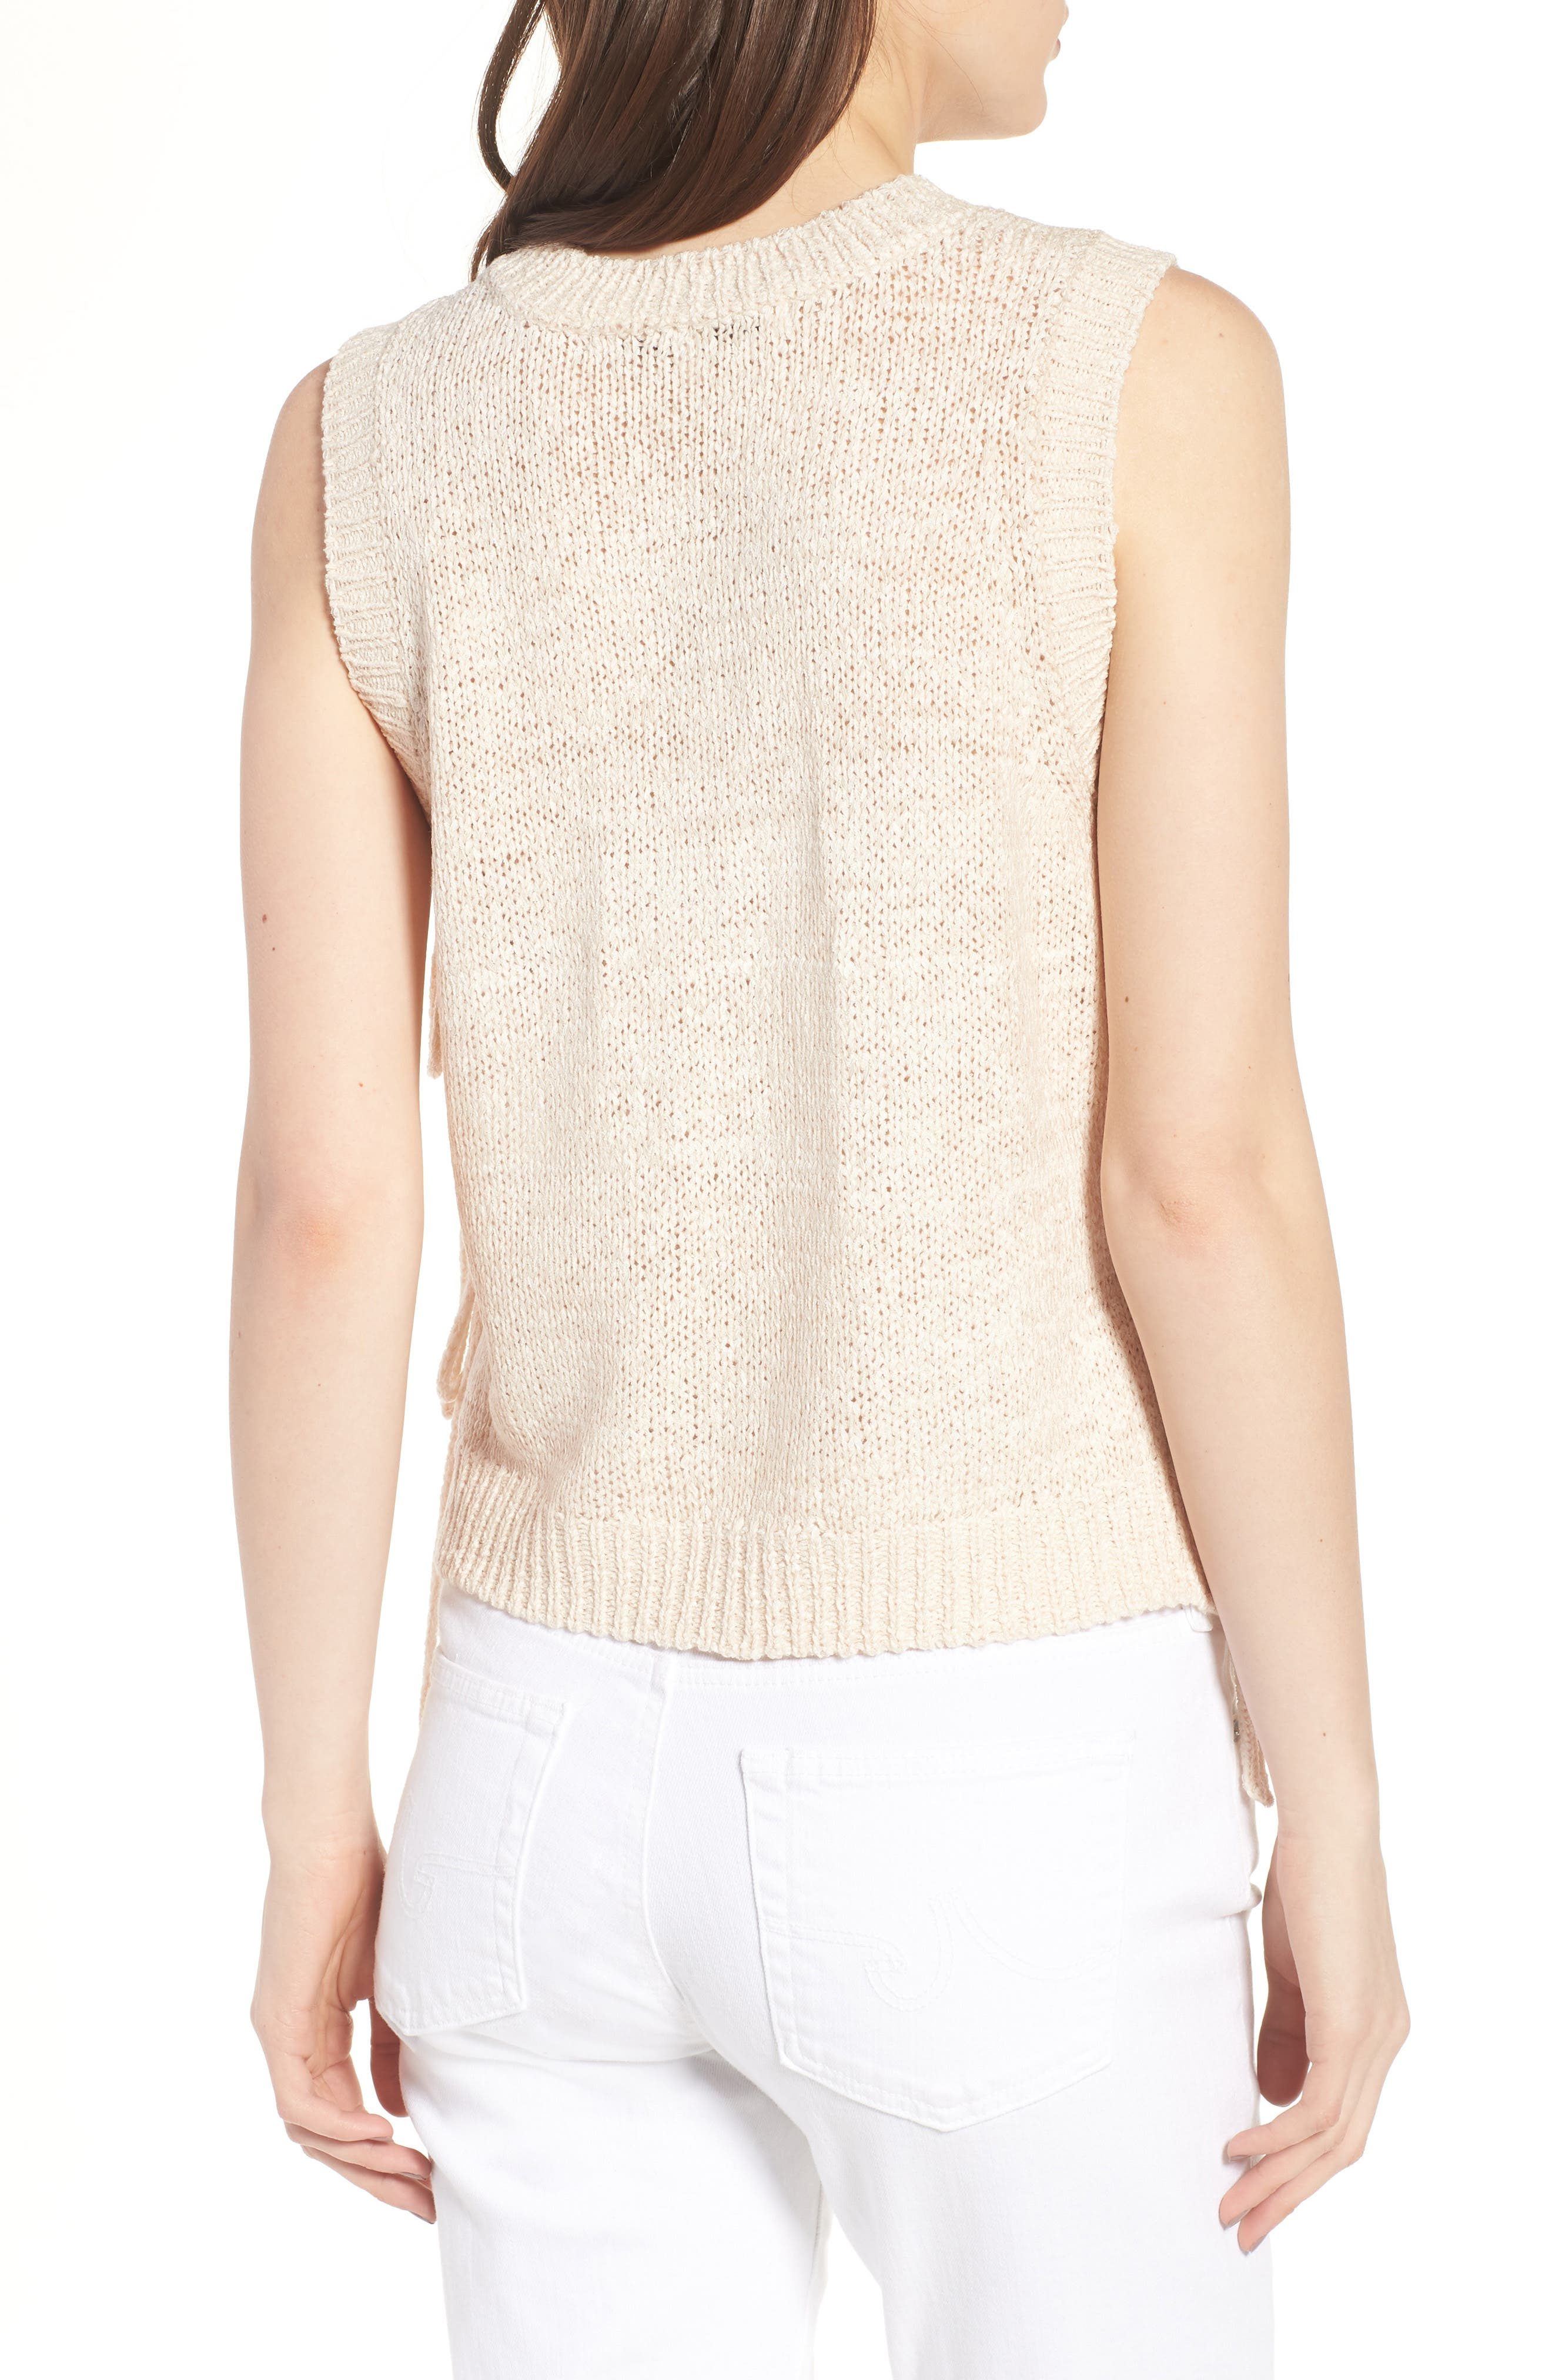 CUPCAKES AND CASHMERE,                             Chantell Sweater Tank,                             Alternate thumbnail 2, color,                             250